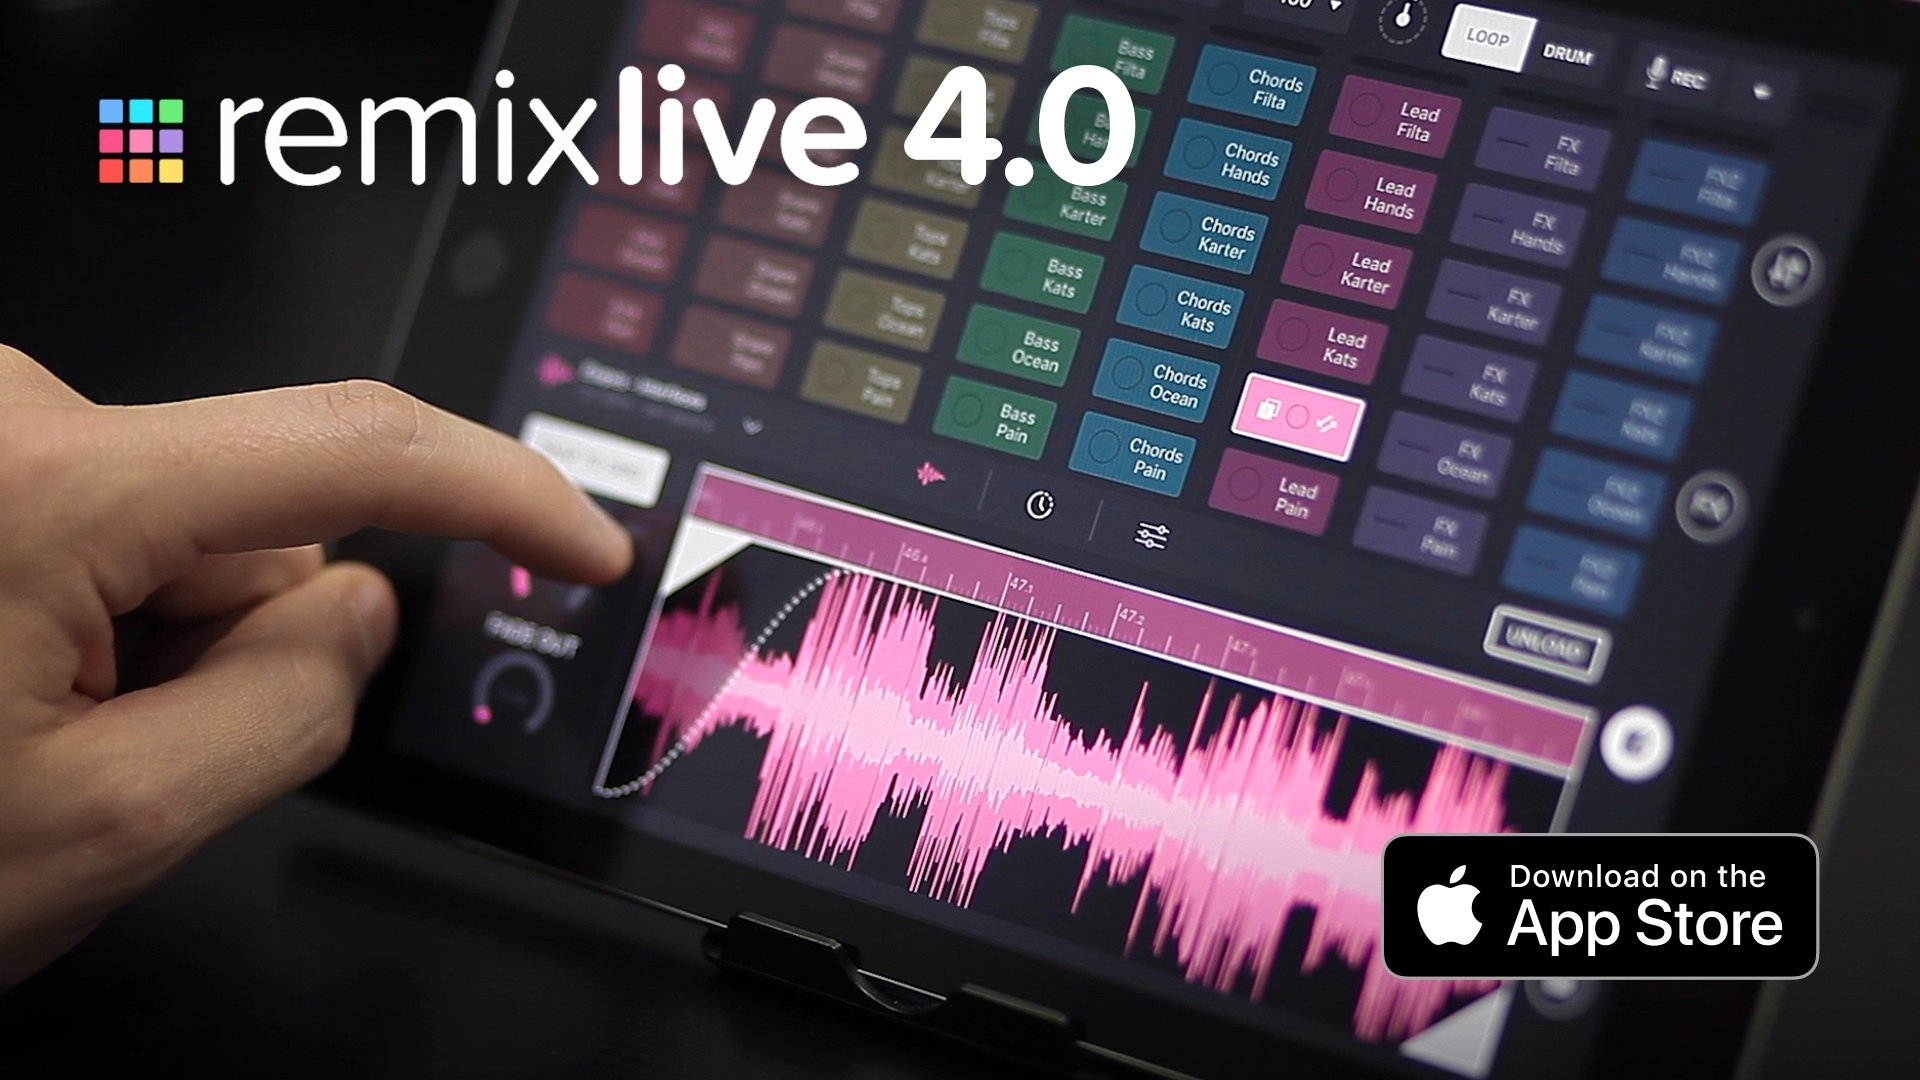 Mixvibes Remixlive 4 —play samples and edit them too 8